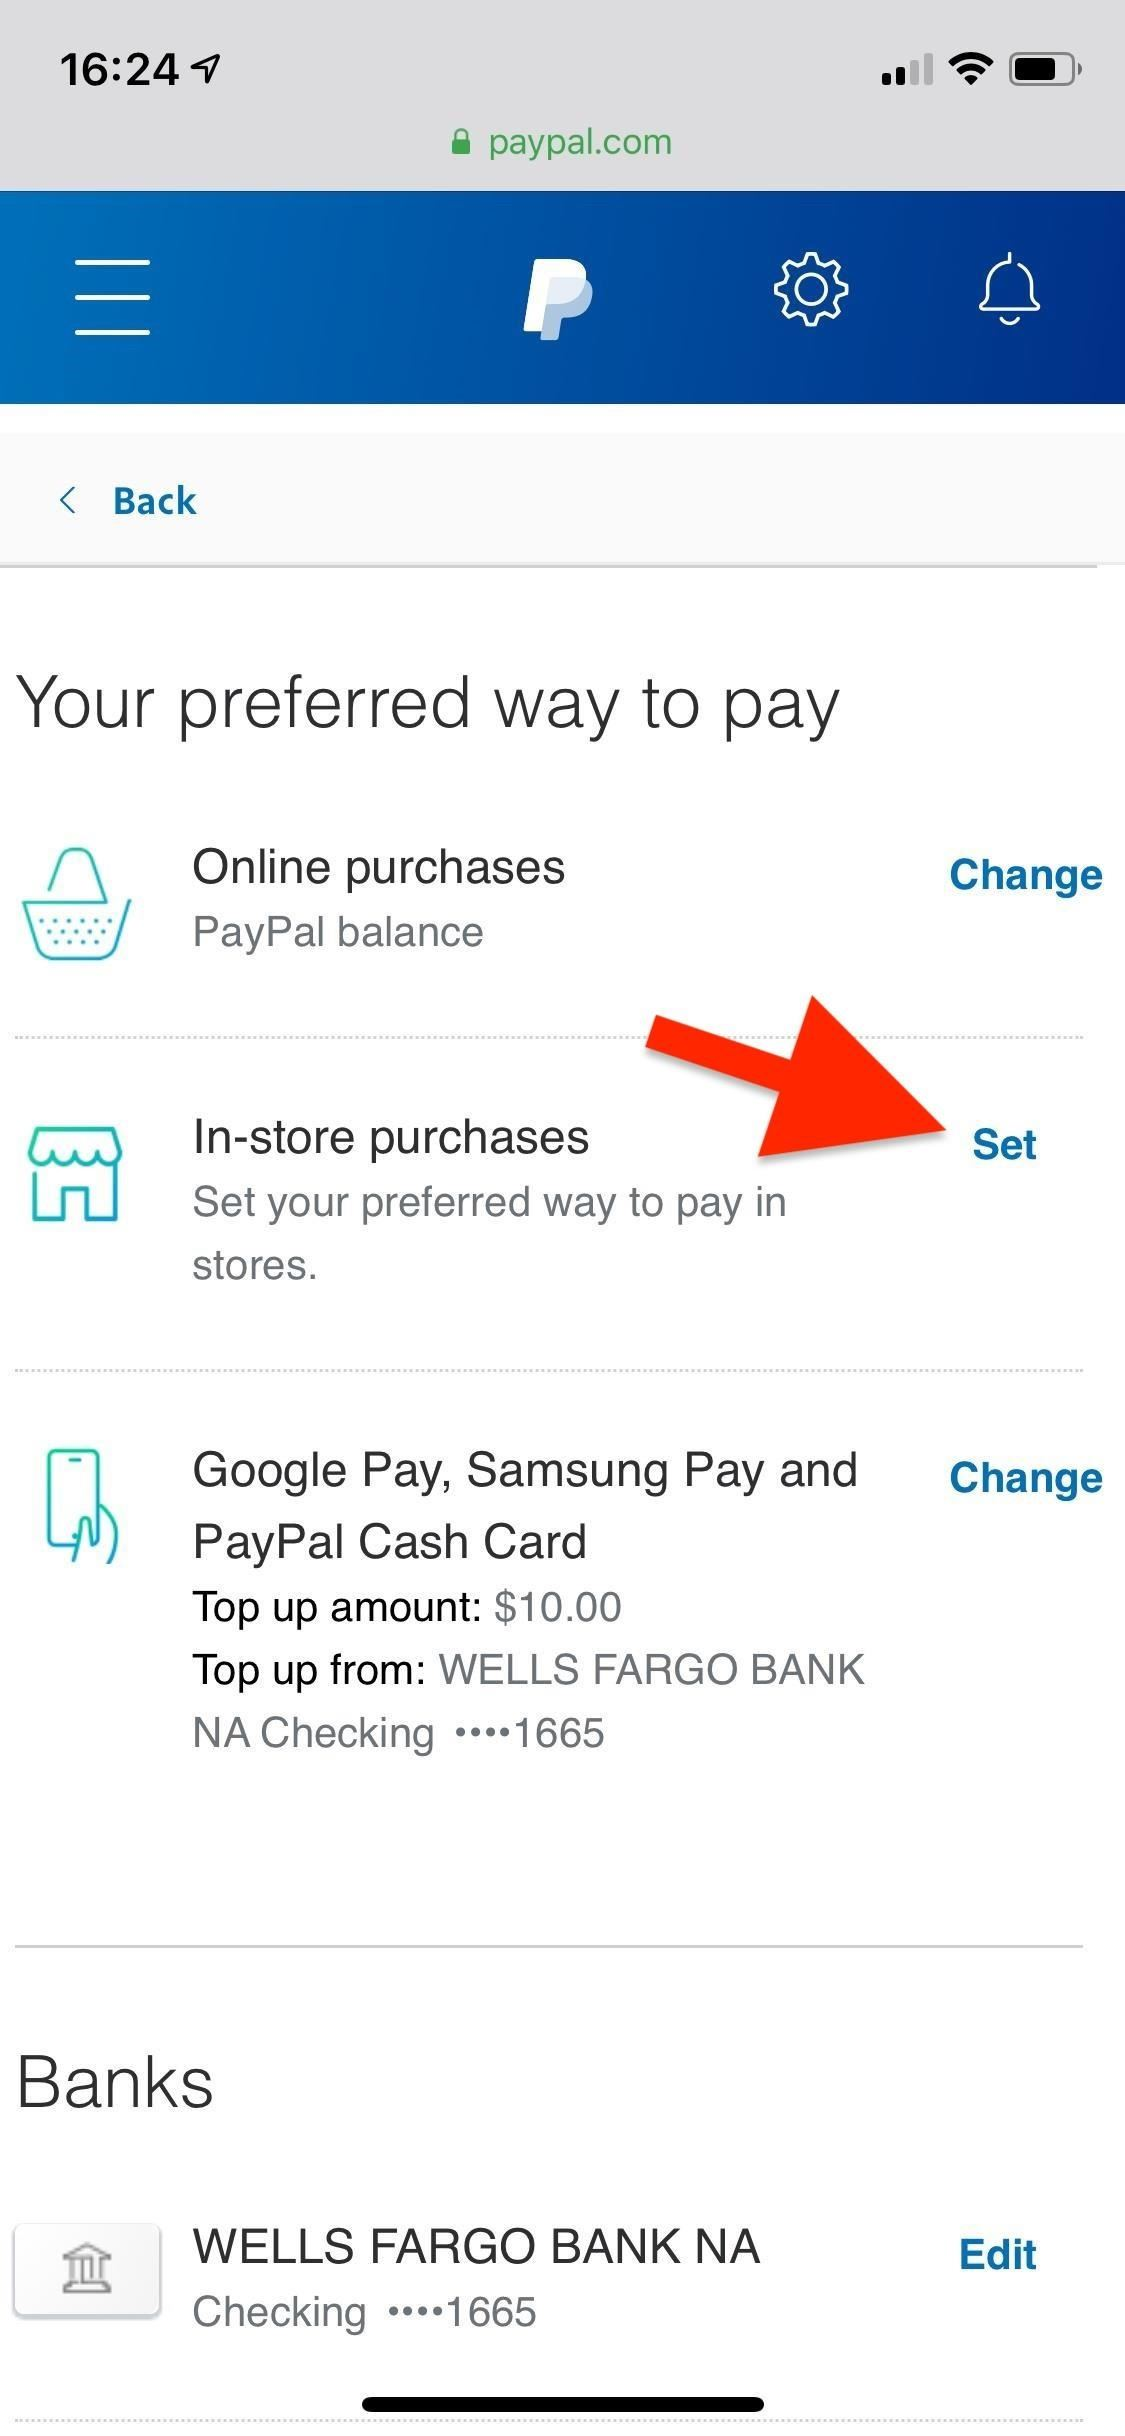 How To Change Online, In-Store, Google Pay, Payment Options For Samsung Pay & PayPal Cash Card For PayPal